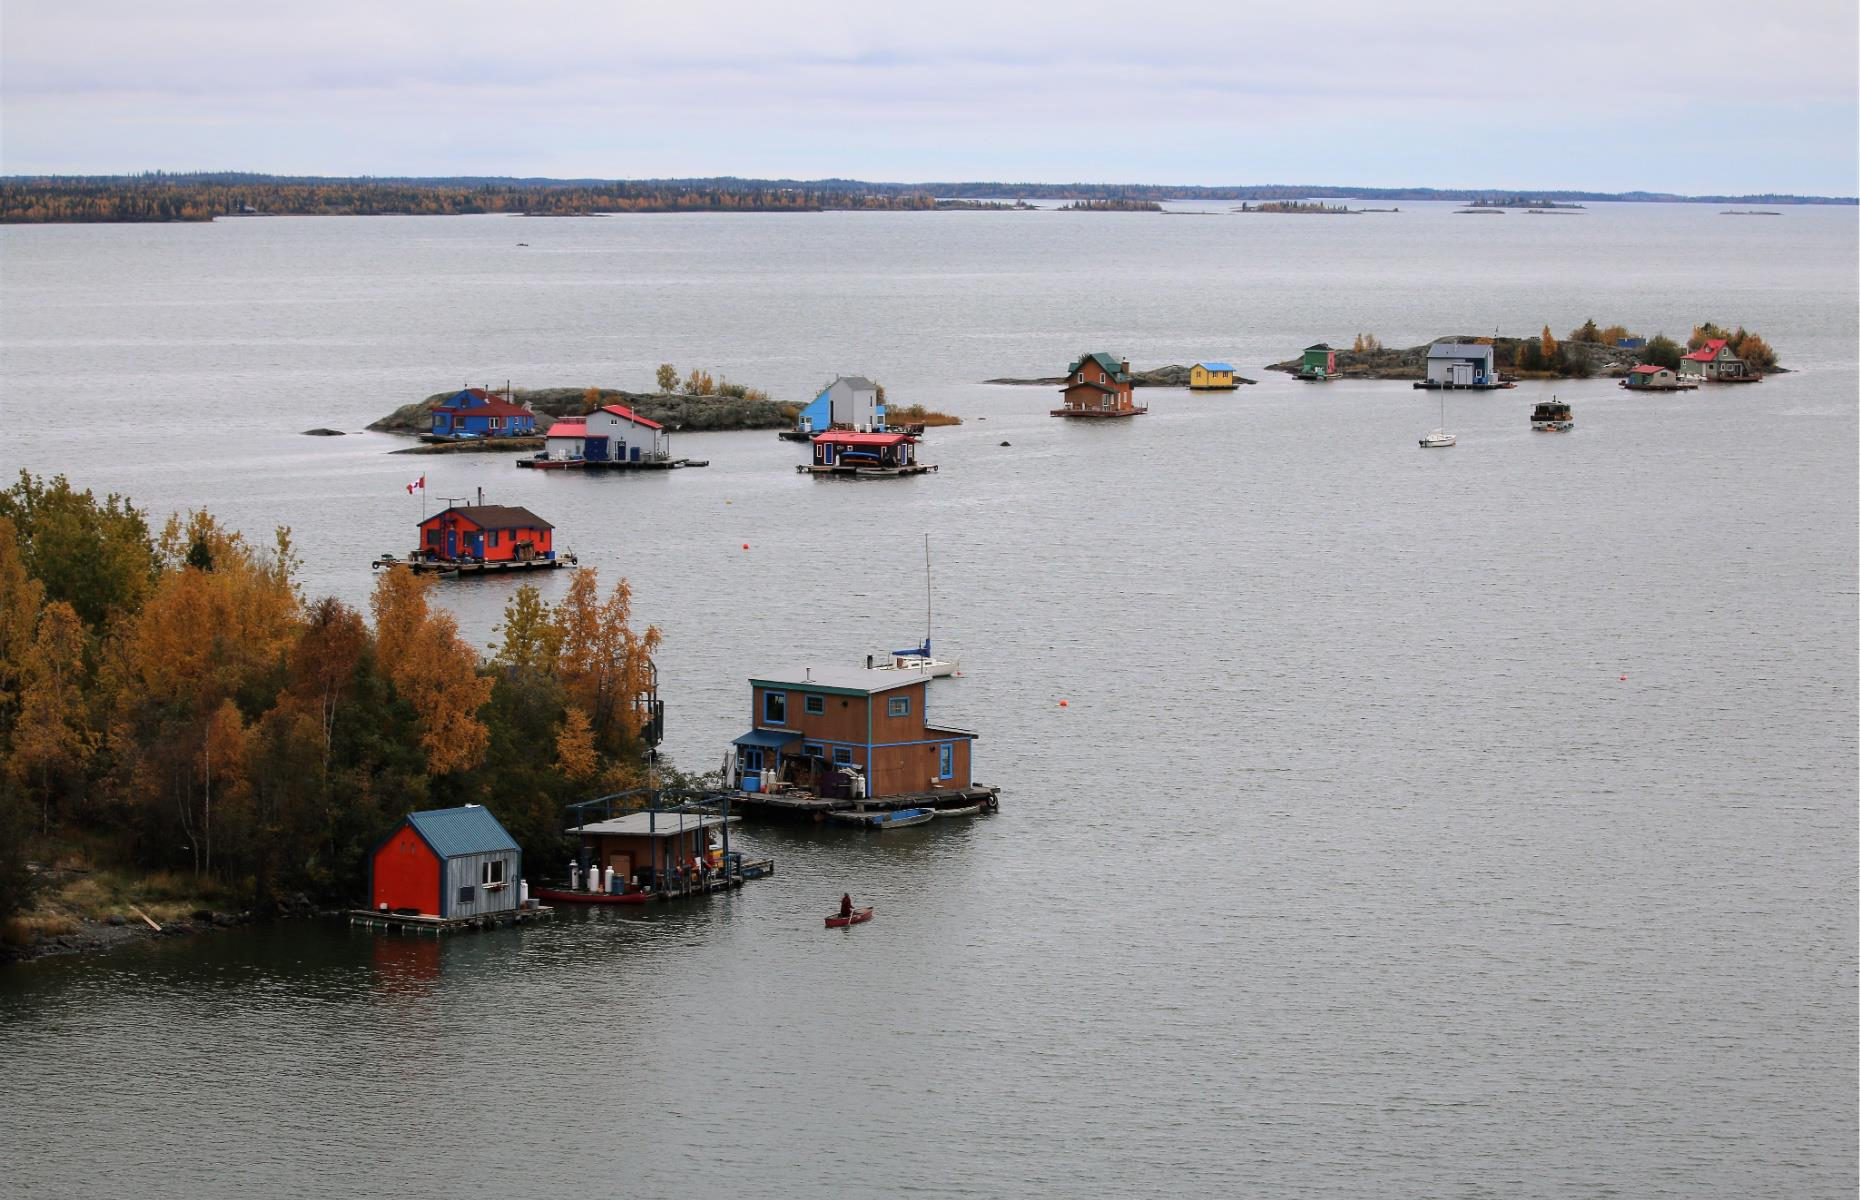 Slide 15 of 31: Yellowknife sits right on Great Slave Lake and the lake is very much part of the city. A community of houseboats floats in Yellowknife Bay during the summer. In wintertime when the lake is frozen over, the boats sit on frozen ice, allowing residents to walk or drive into town.